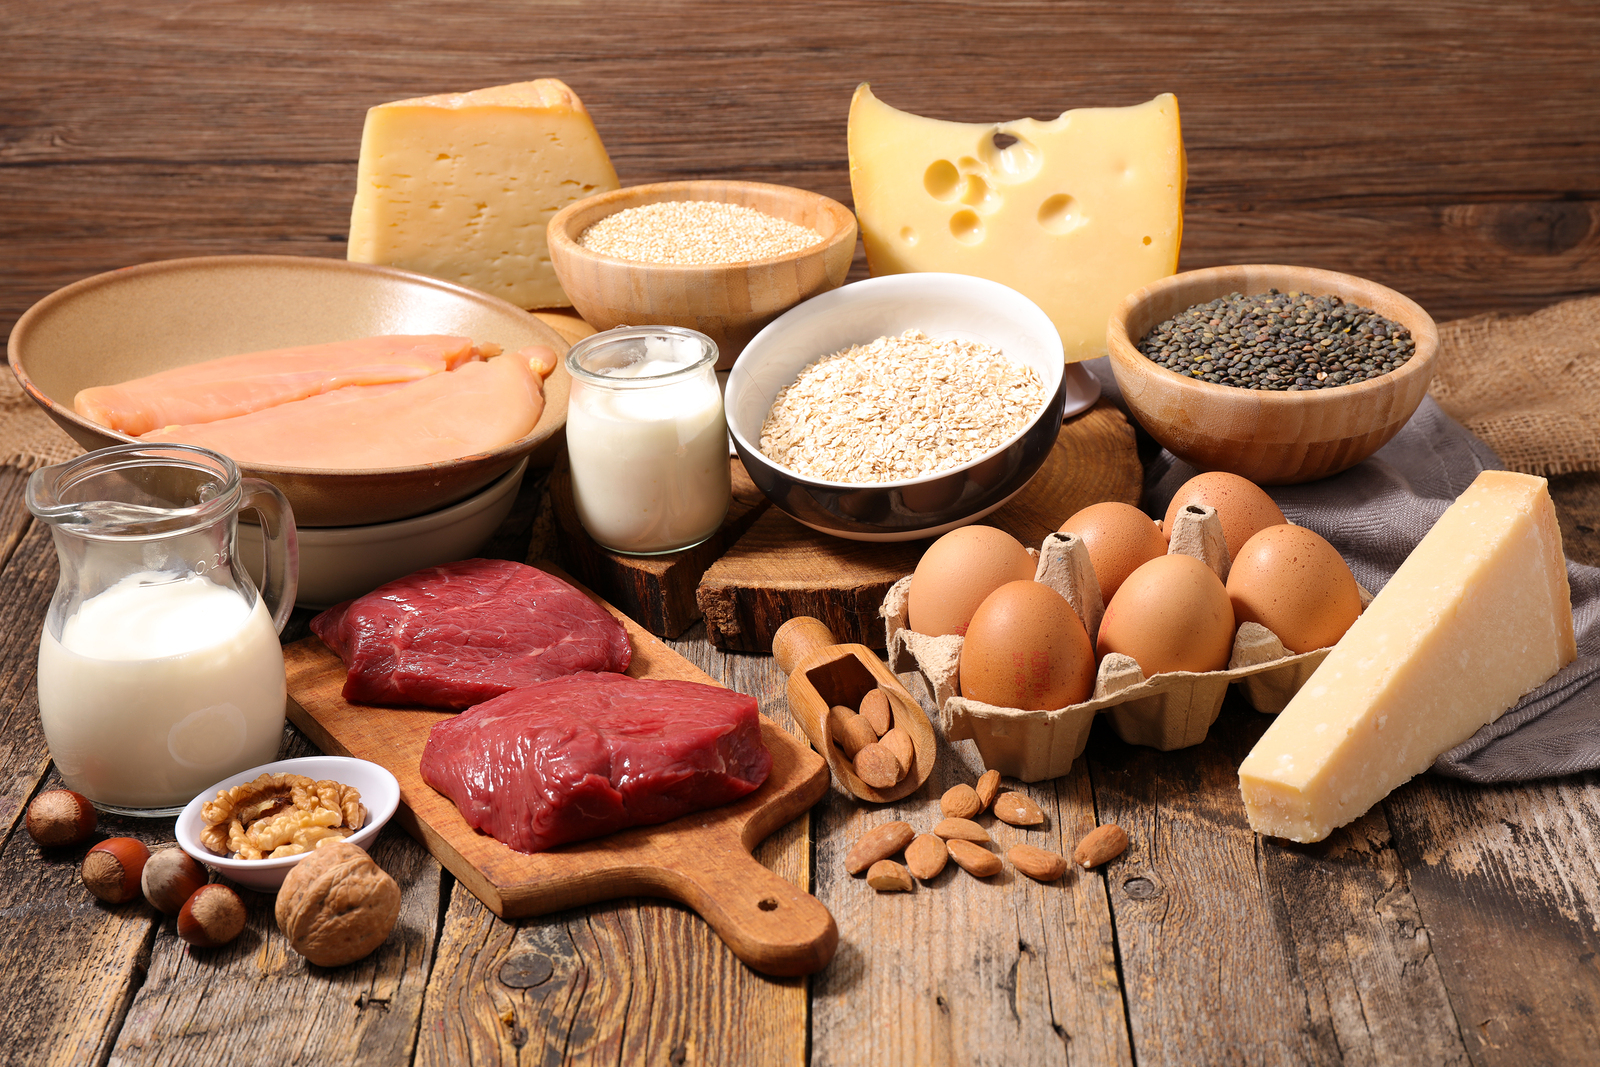 bigstock-food-high-in-protein-protein-s-134547956.jpg